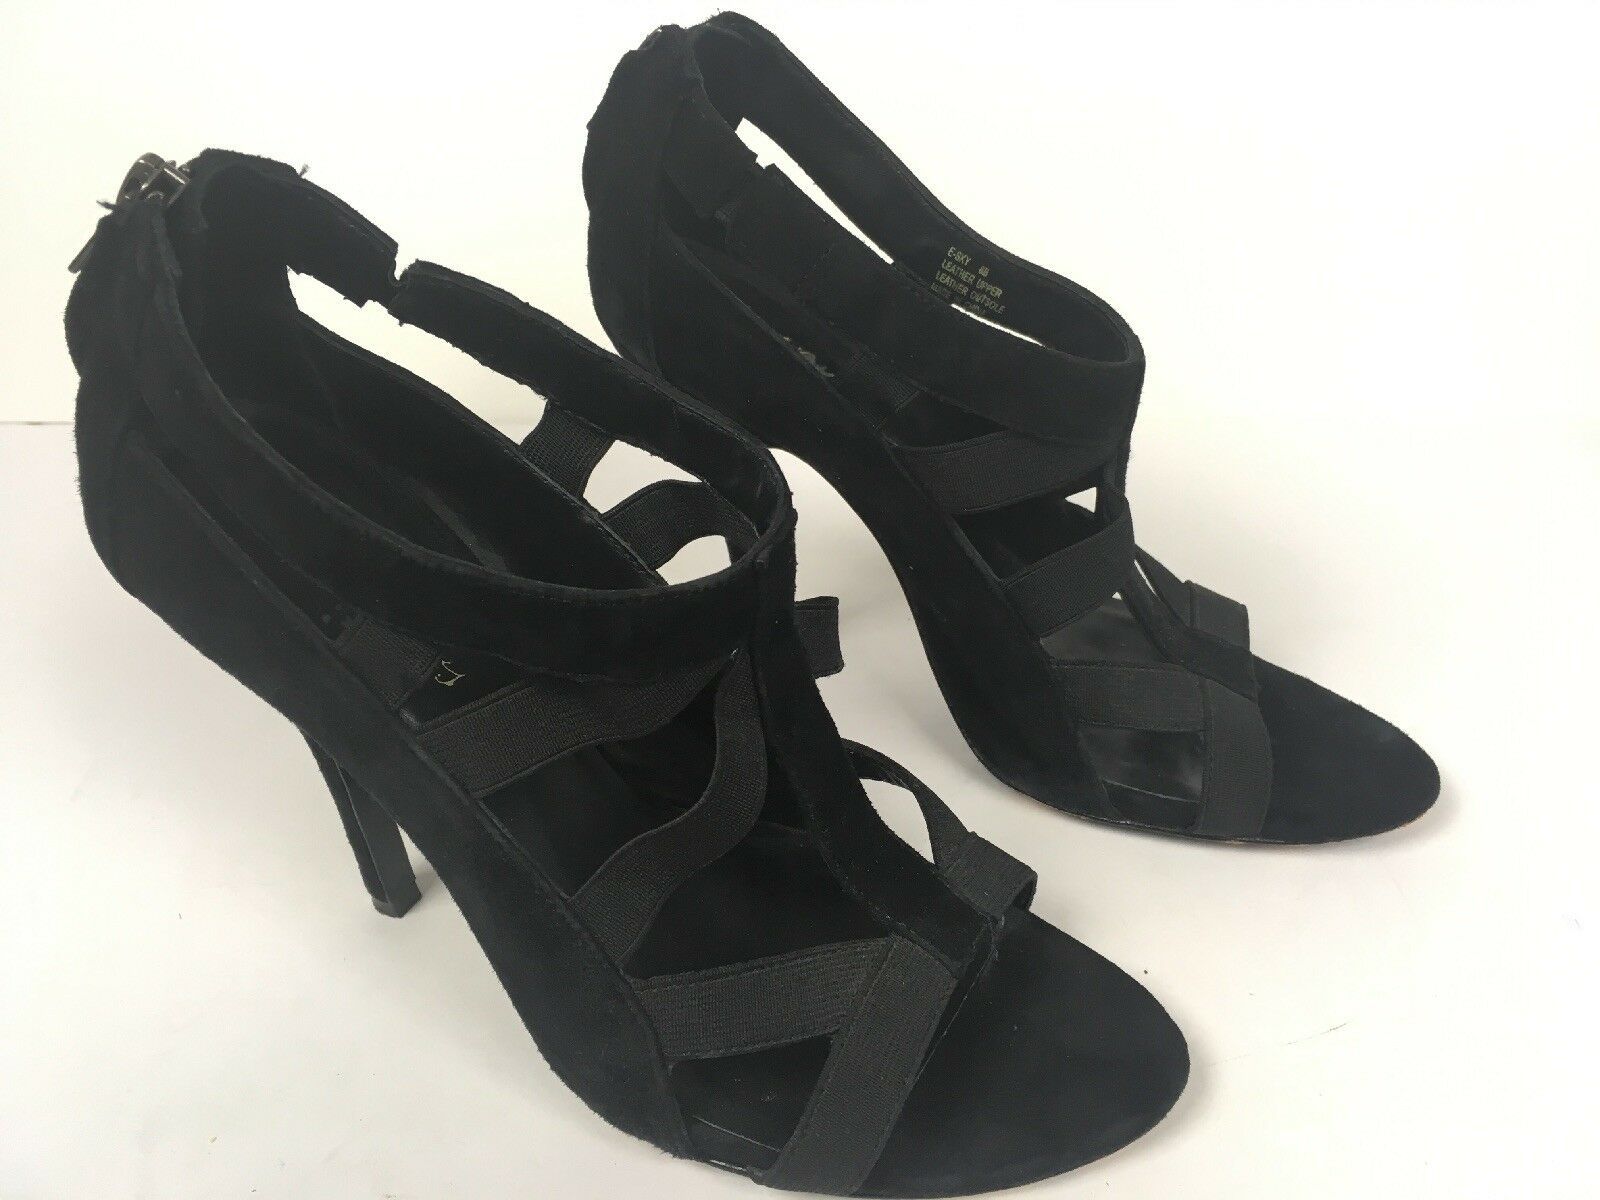 Elizabeth James Womens Black Suede Heels Stiletto Caged Strappy, Strappy, Strappy, Zipper Size 8 B f74023